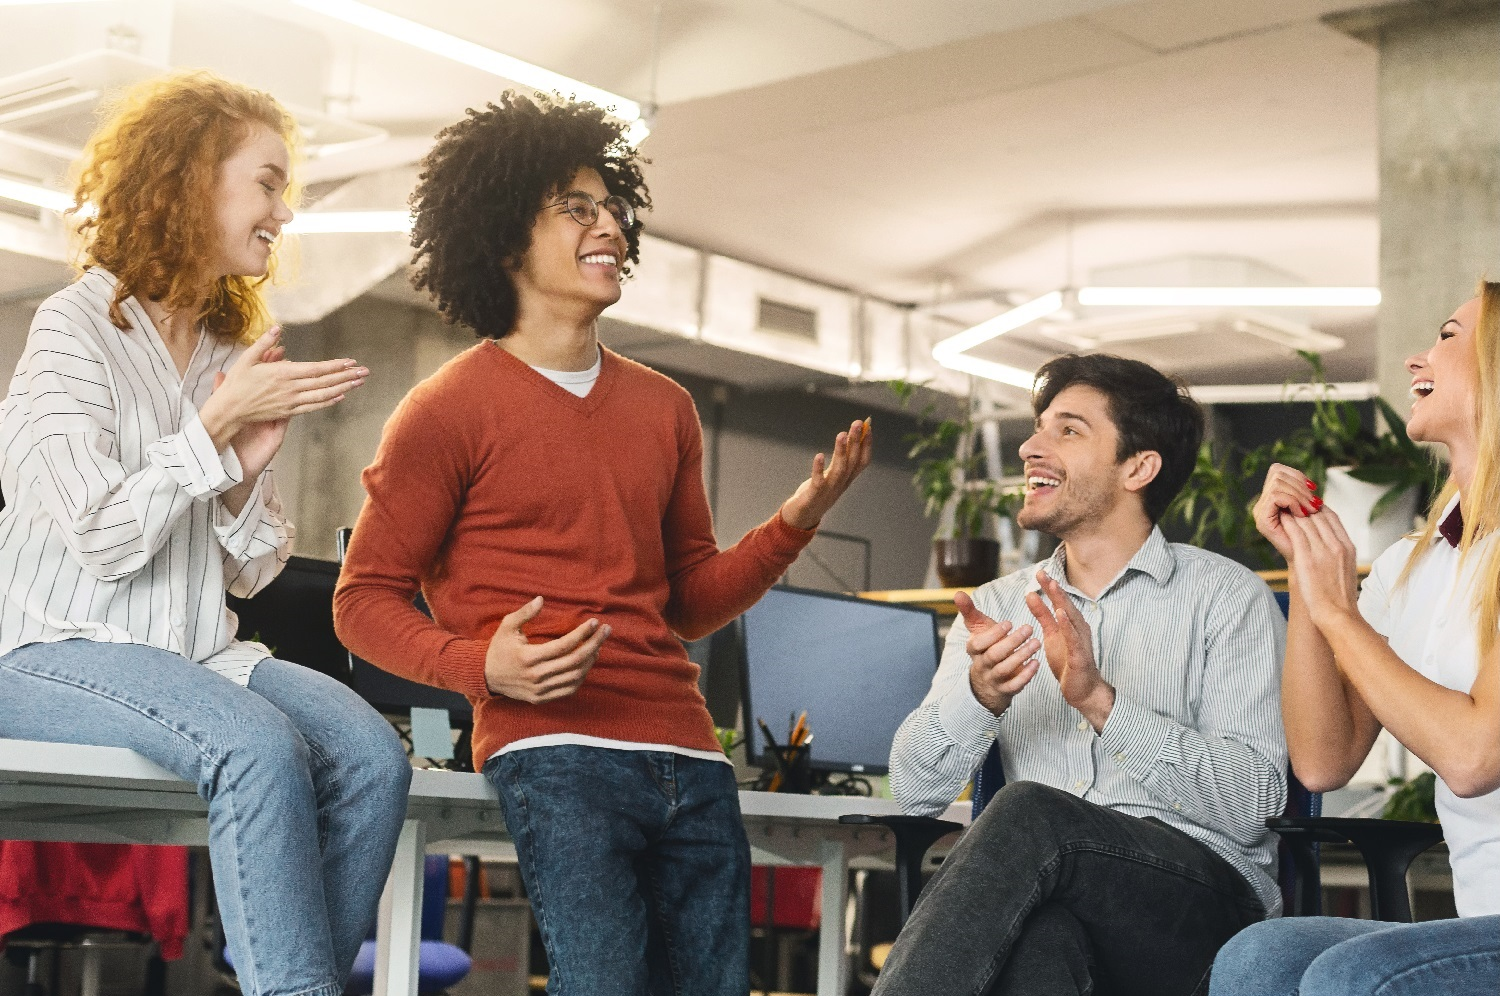 Cheerful business team greeting their colleague, applauding to successful black guy, free space